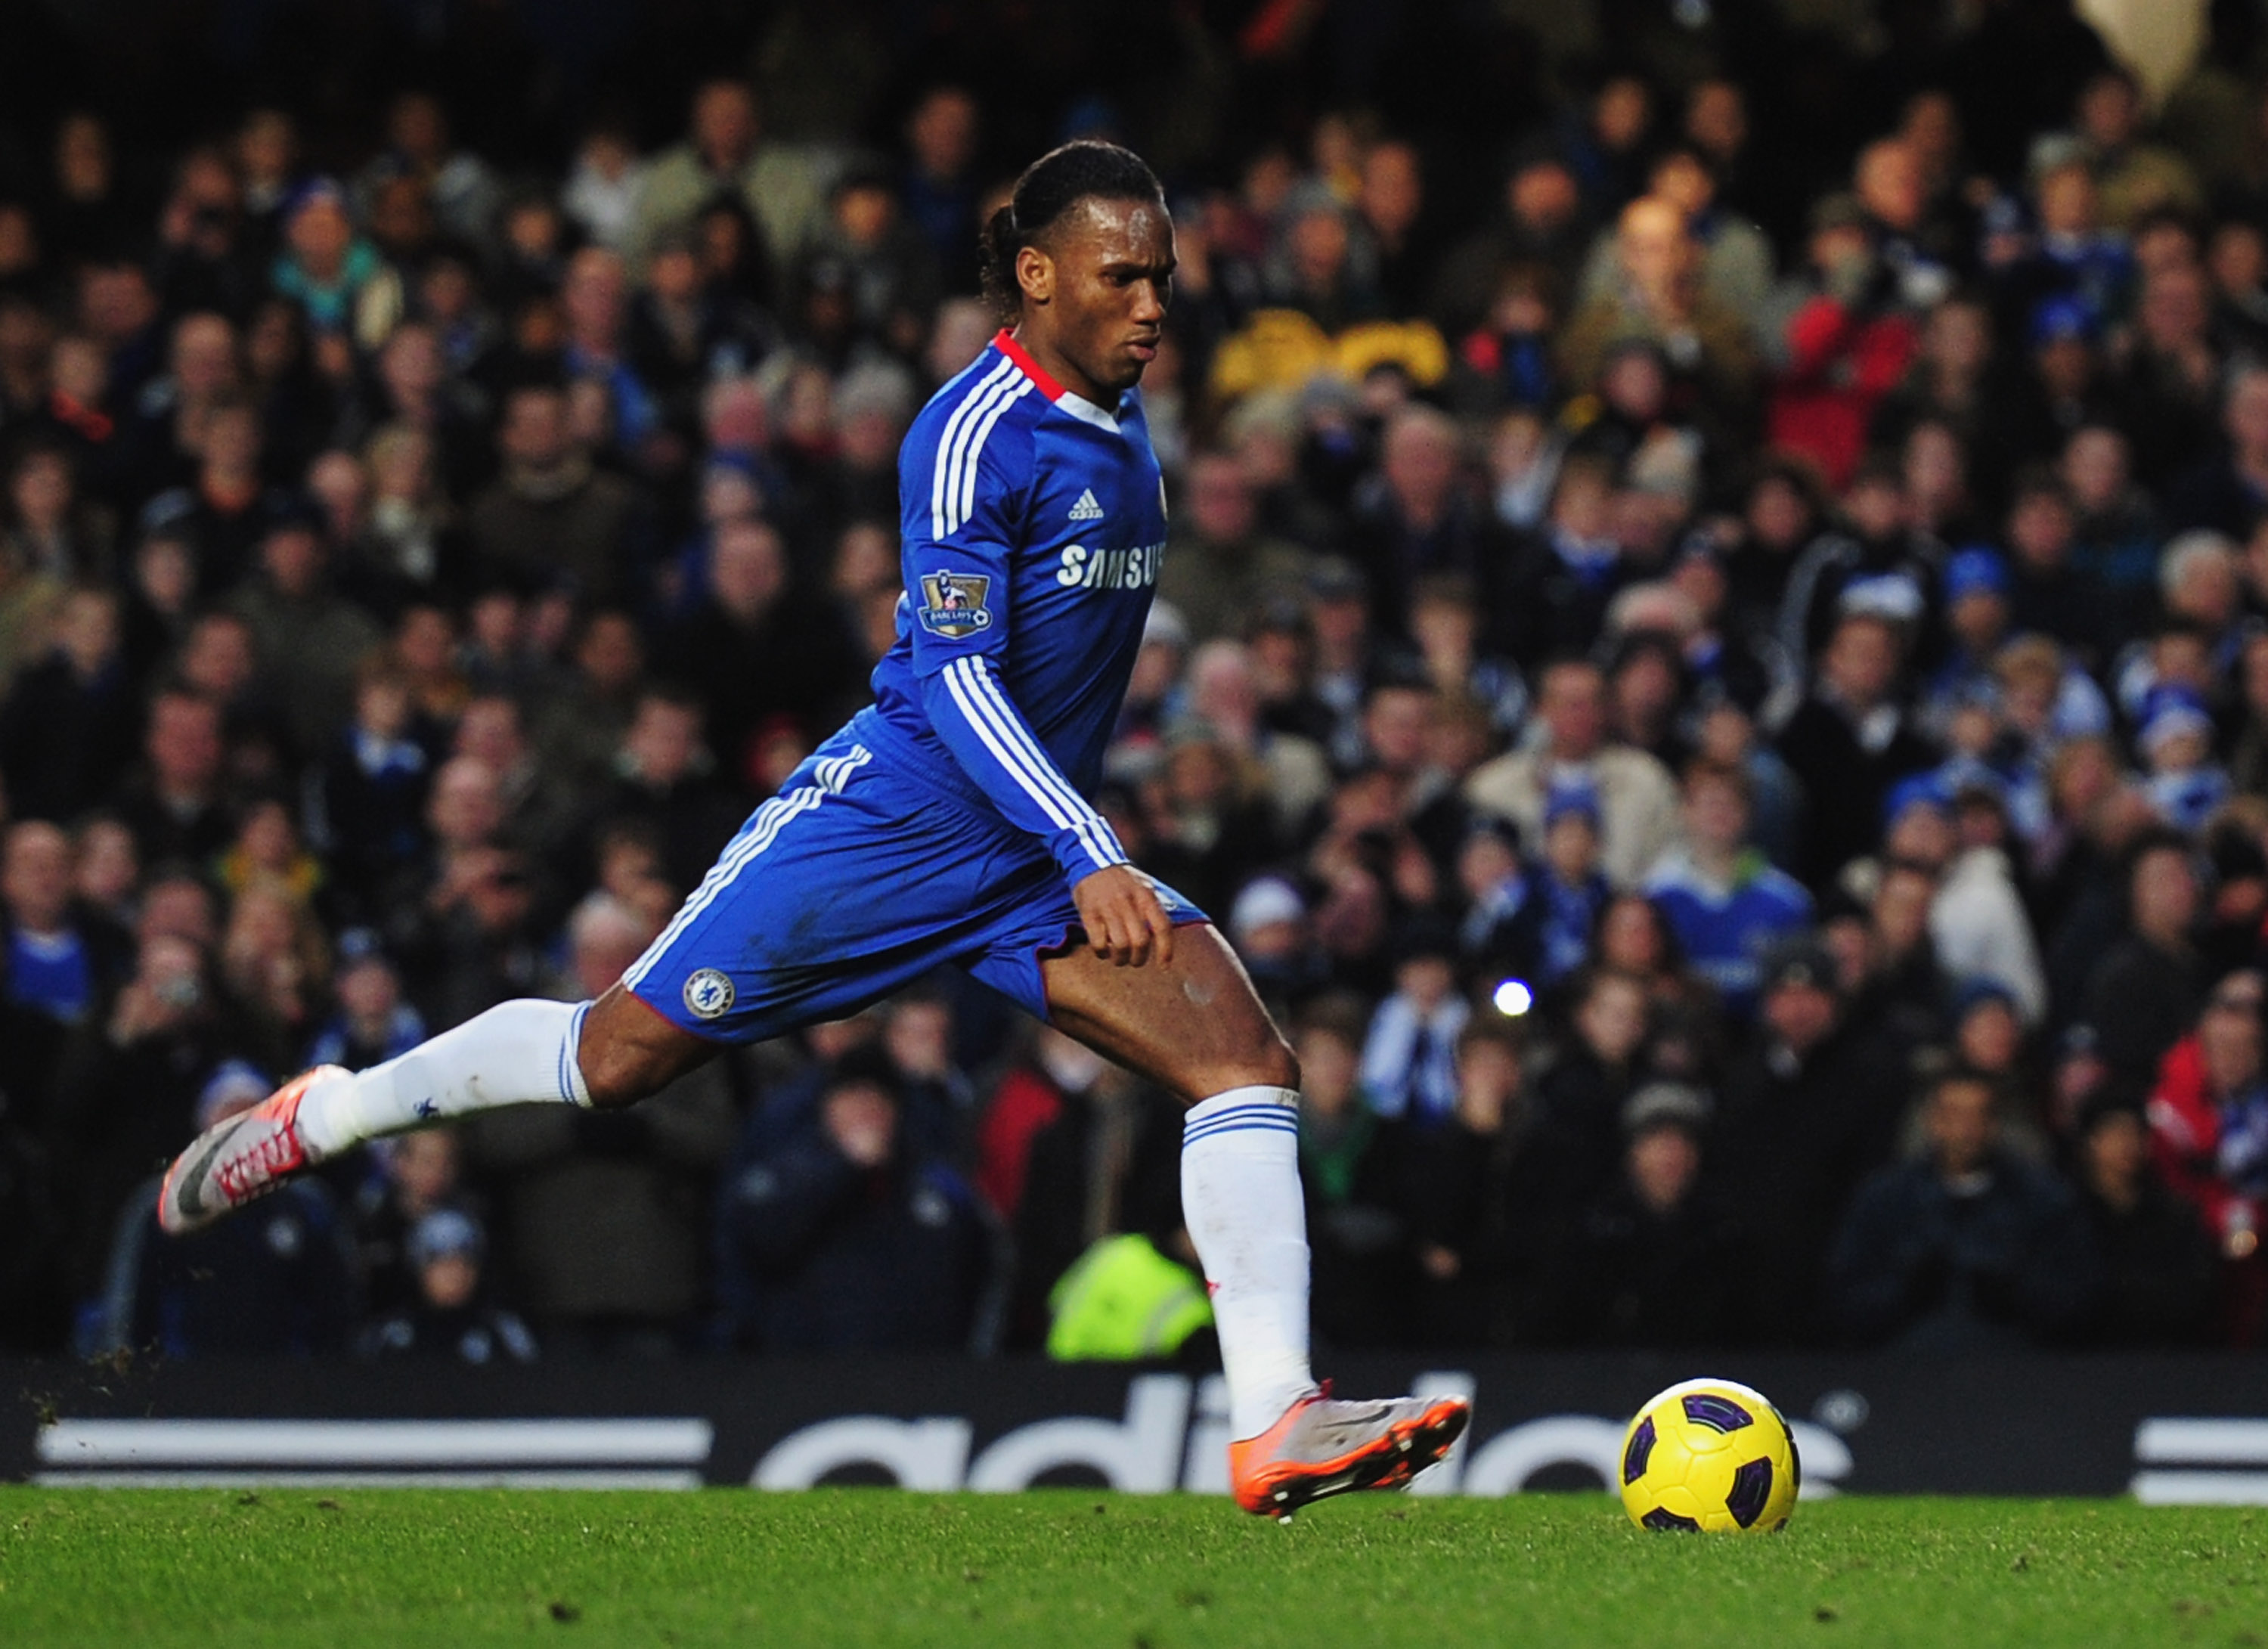 LONDON, ENGLAND - DECEMBER 04:  Didier Drogba of Chelsea scores their first goal from the penalty spot during the Barclays Premier League match between Chelsea and Everton at Stamford Bridge on December 4, 2010 in London, England.  (Photo by Shaun Botteri